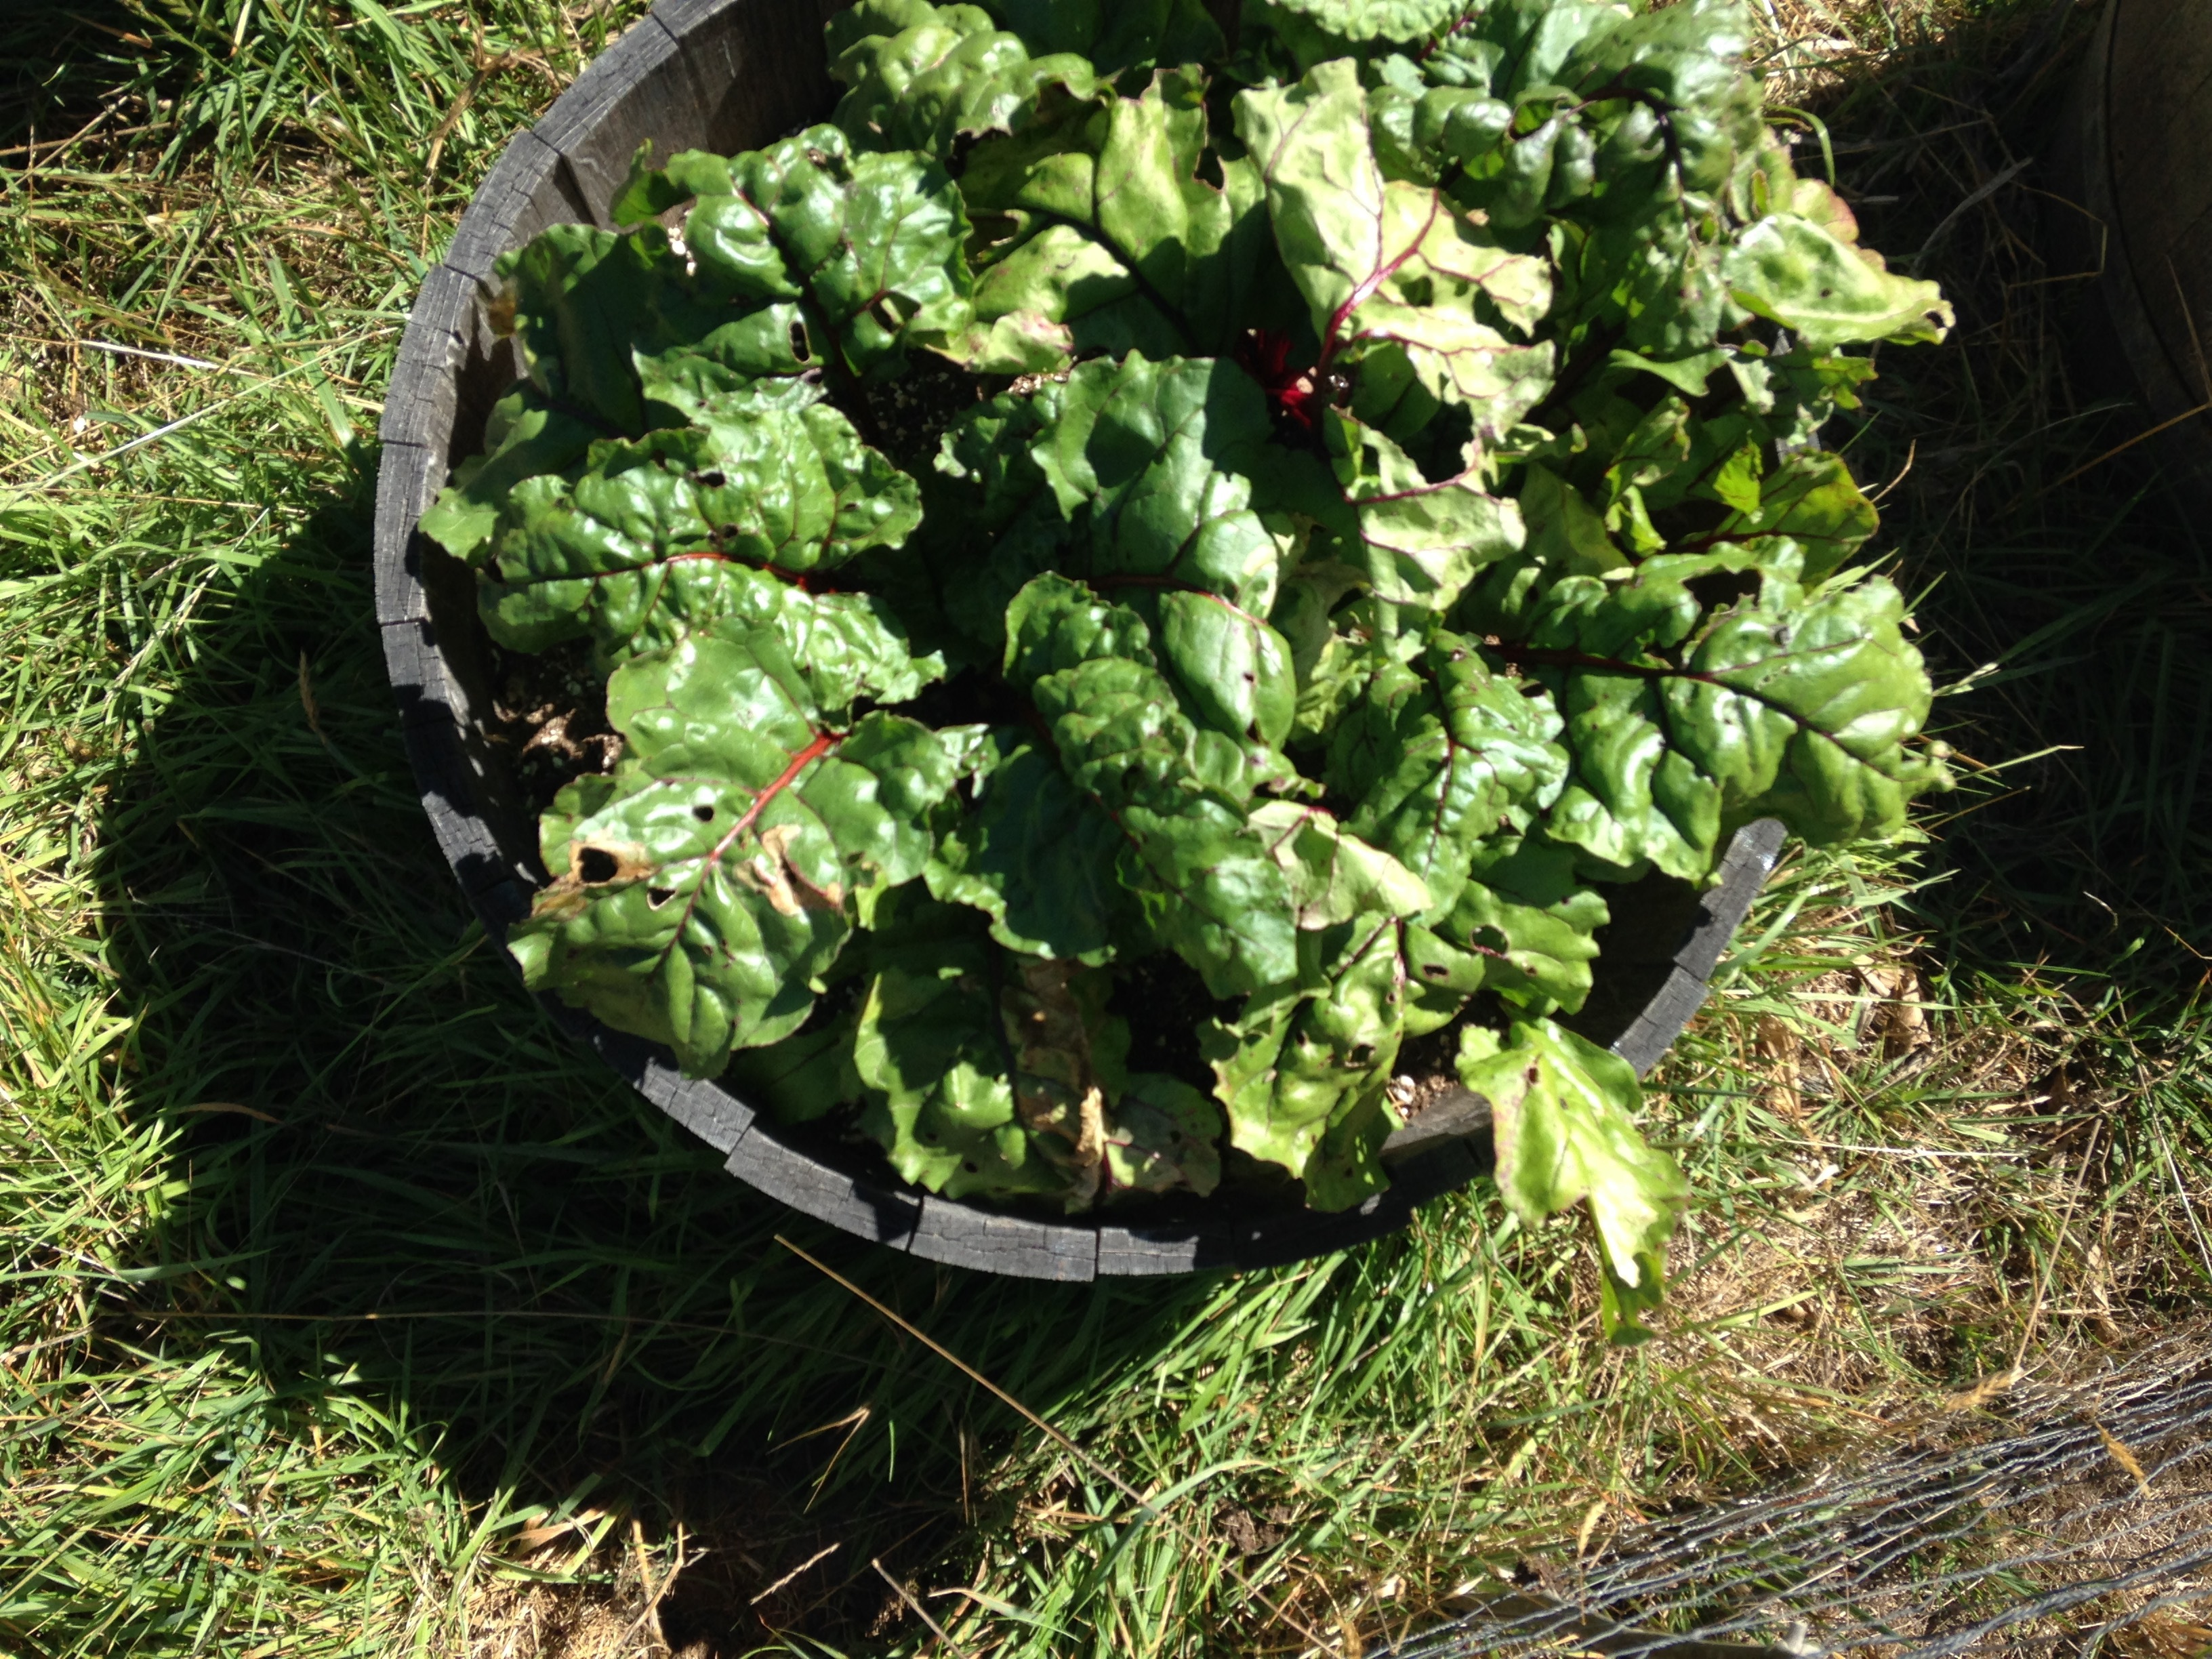 Beets growing in a large barrel.